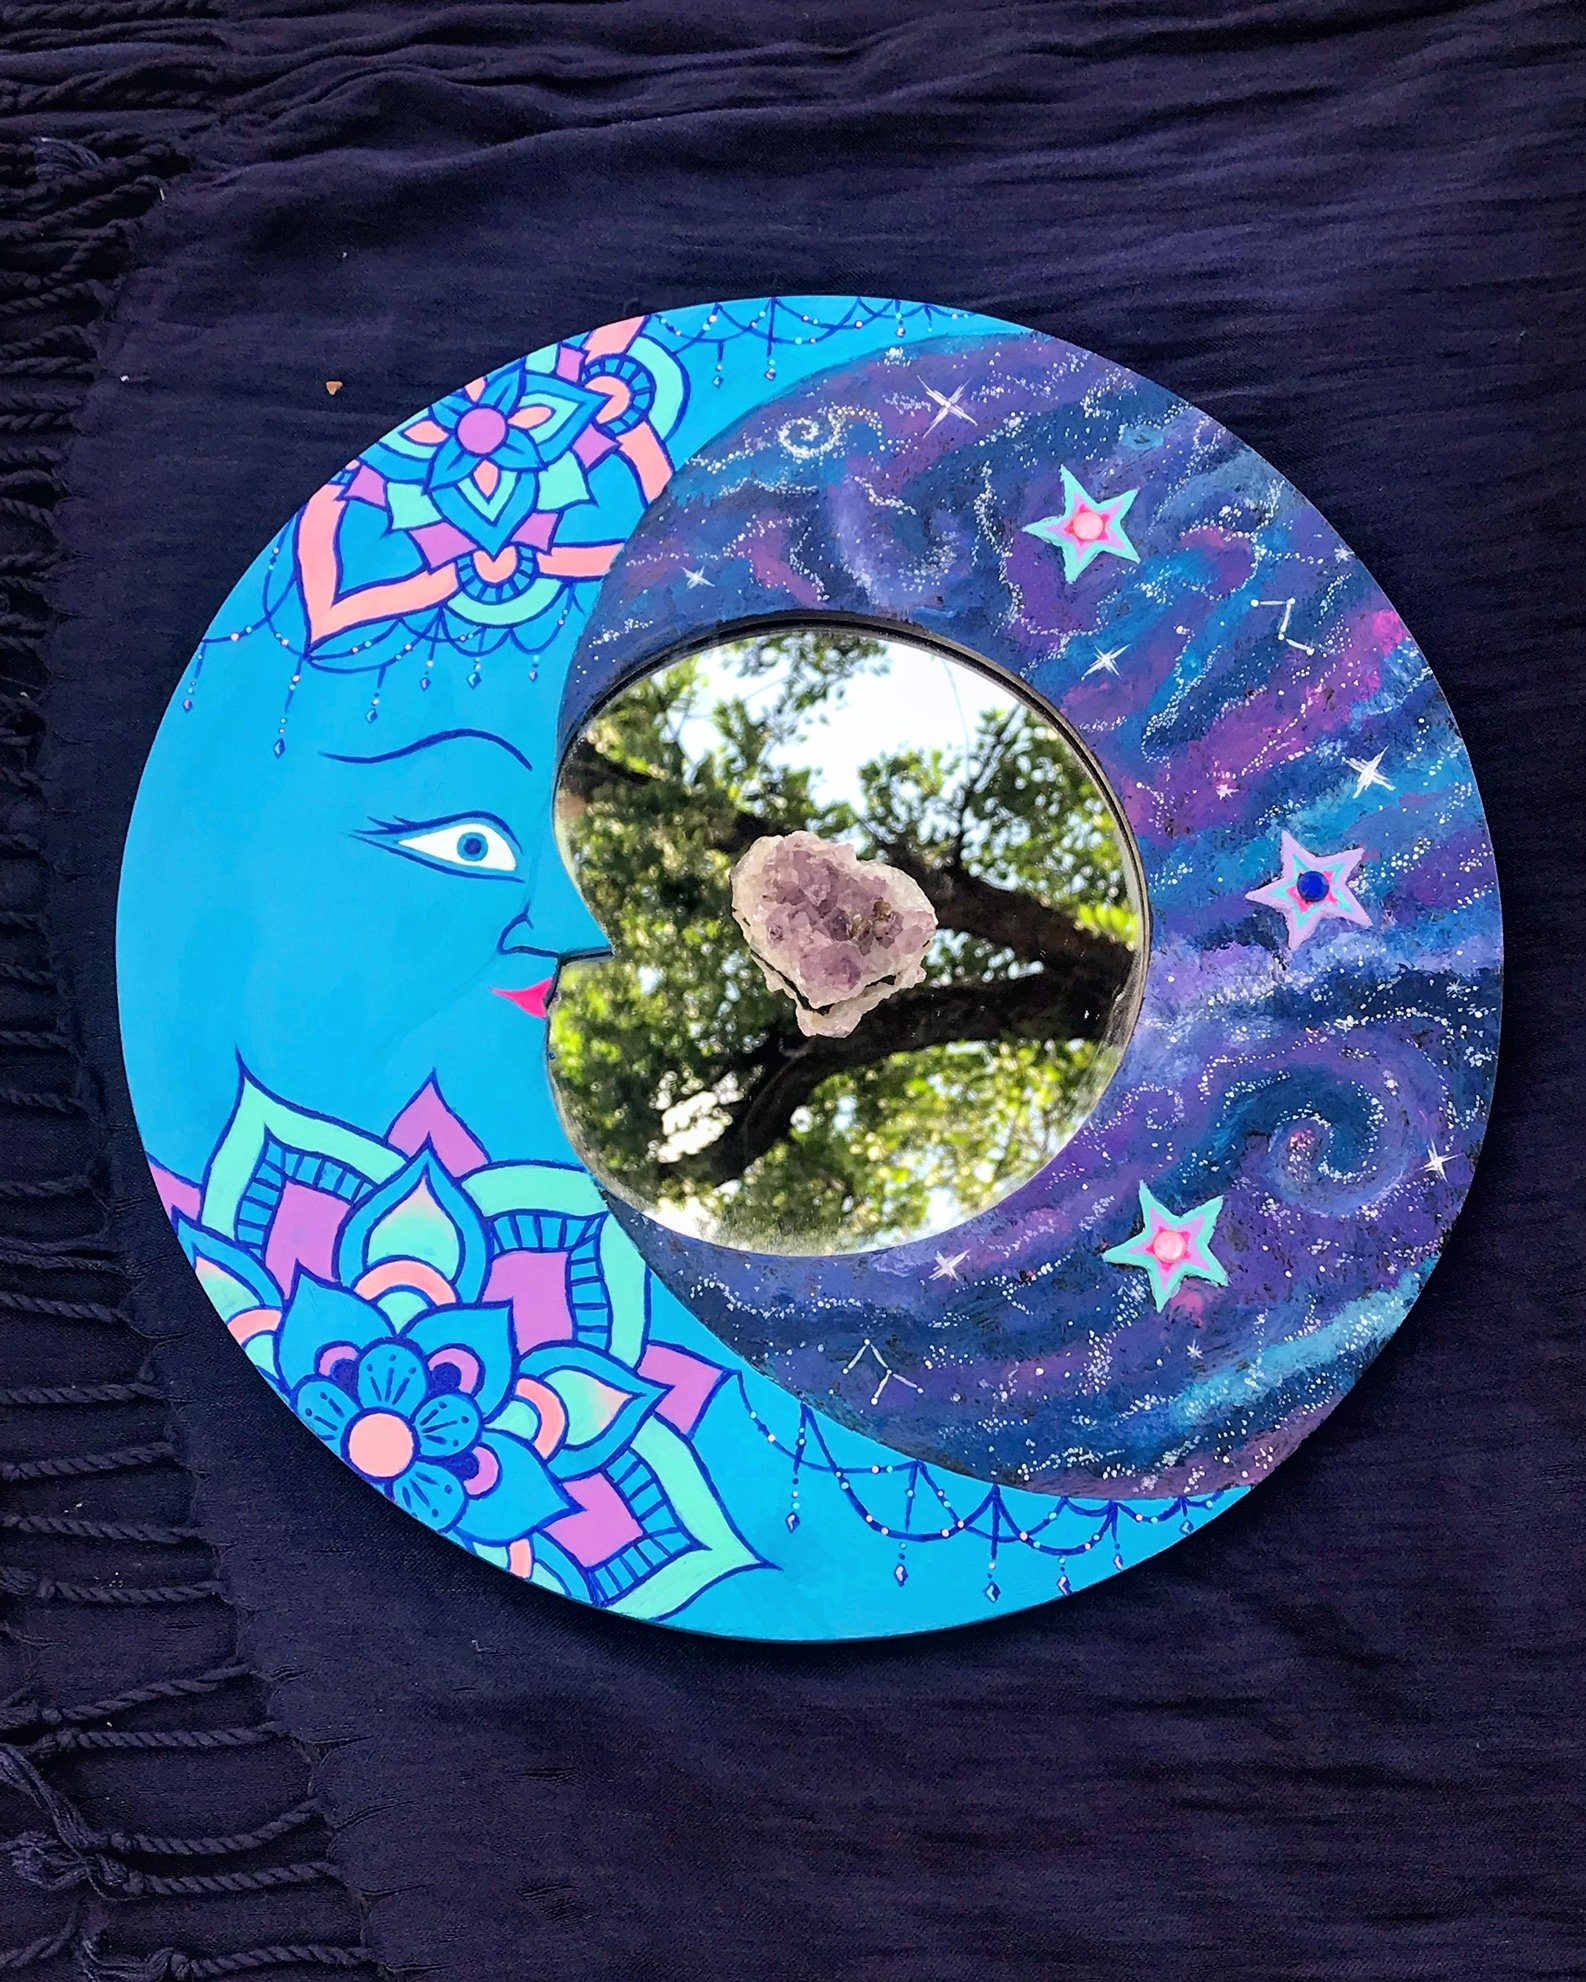 Refurbished, hand painted thrift store galaxy mandala moon mirror with rhinestone accents.